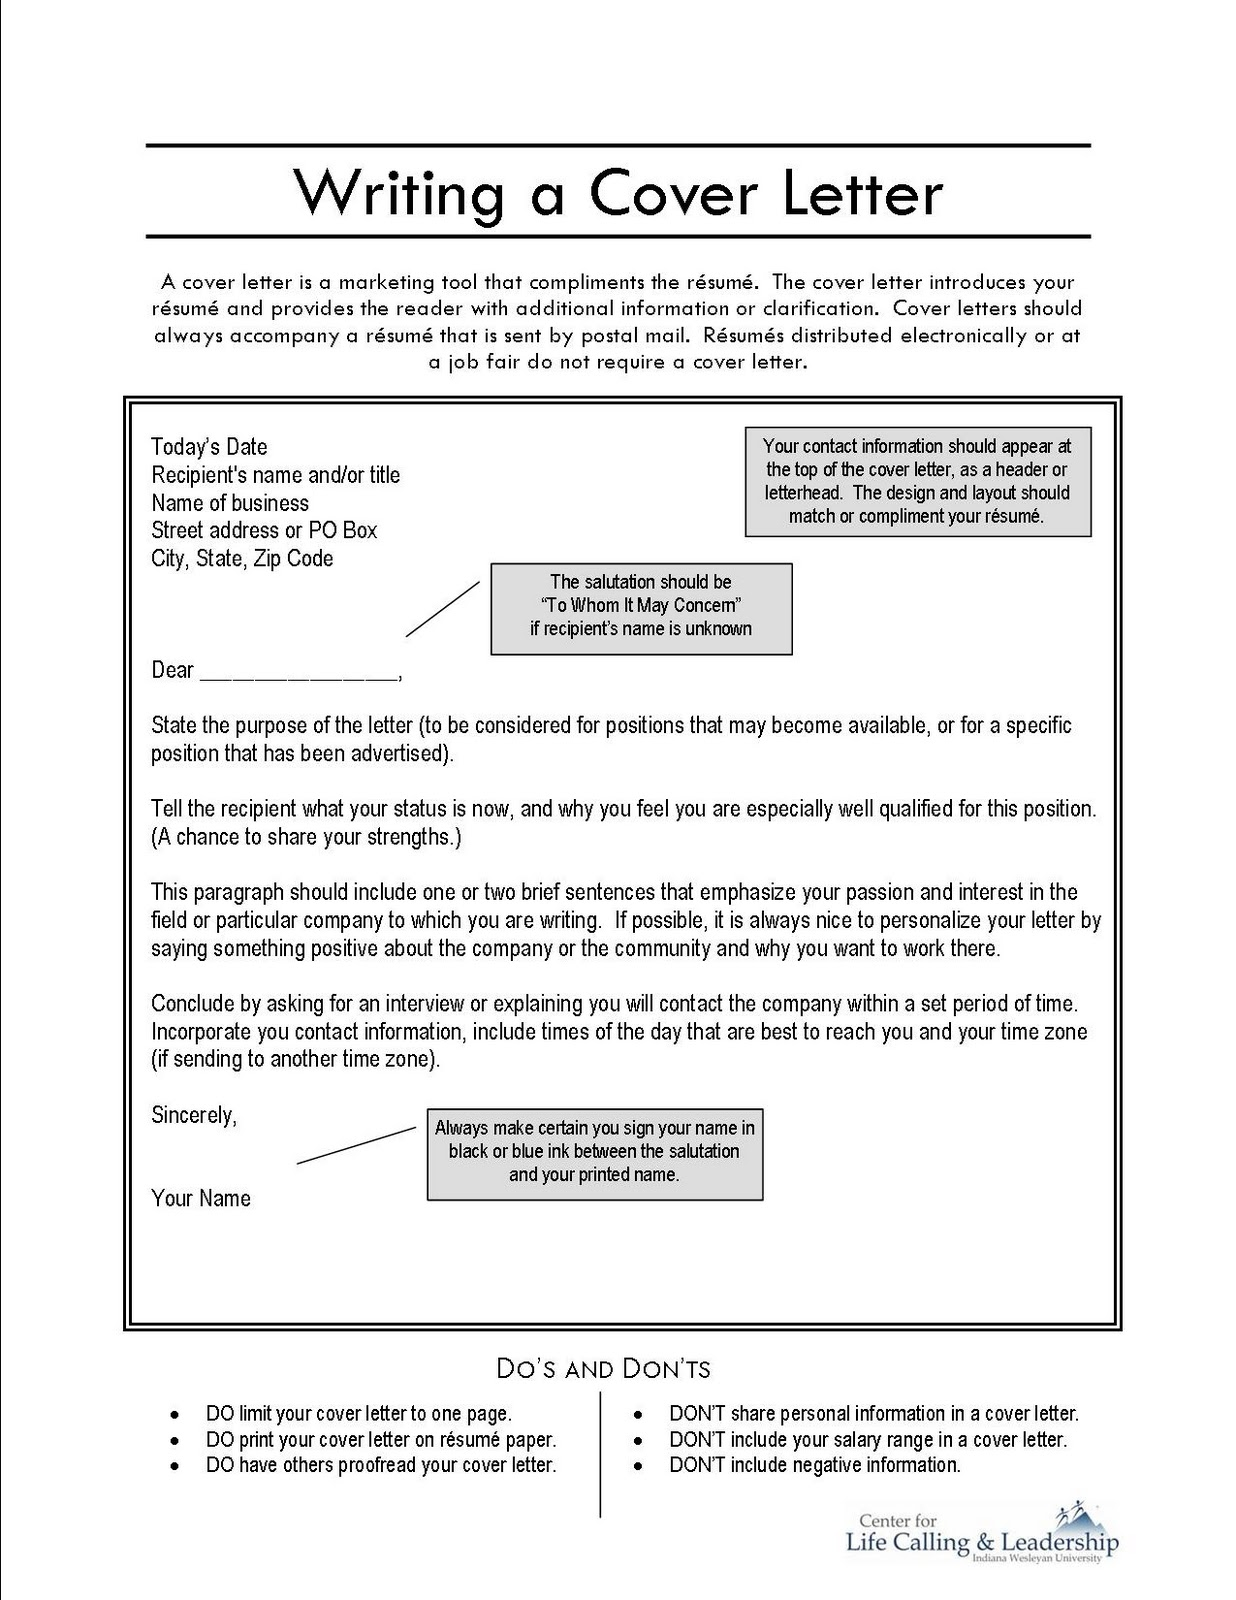 English advanced level 2 aka na2 formal letter writing formal letter writing thecheapjerseys Image collections